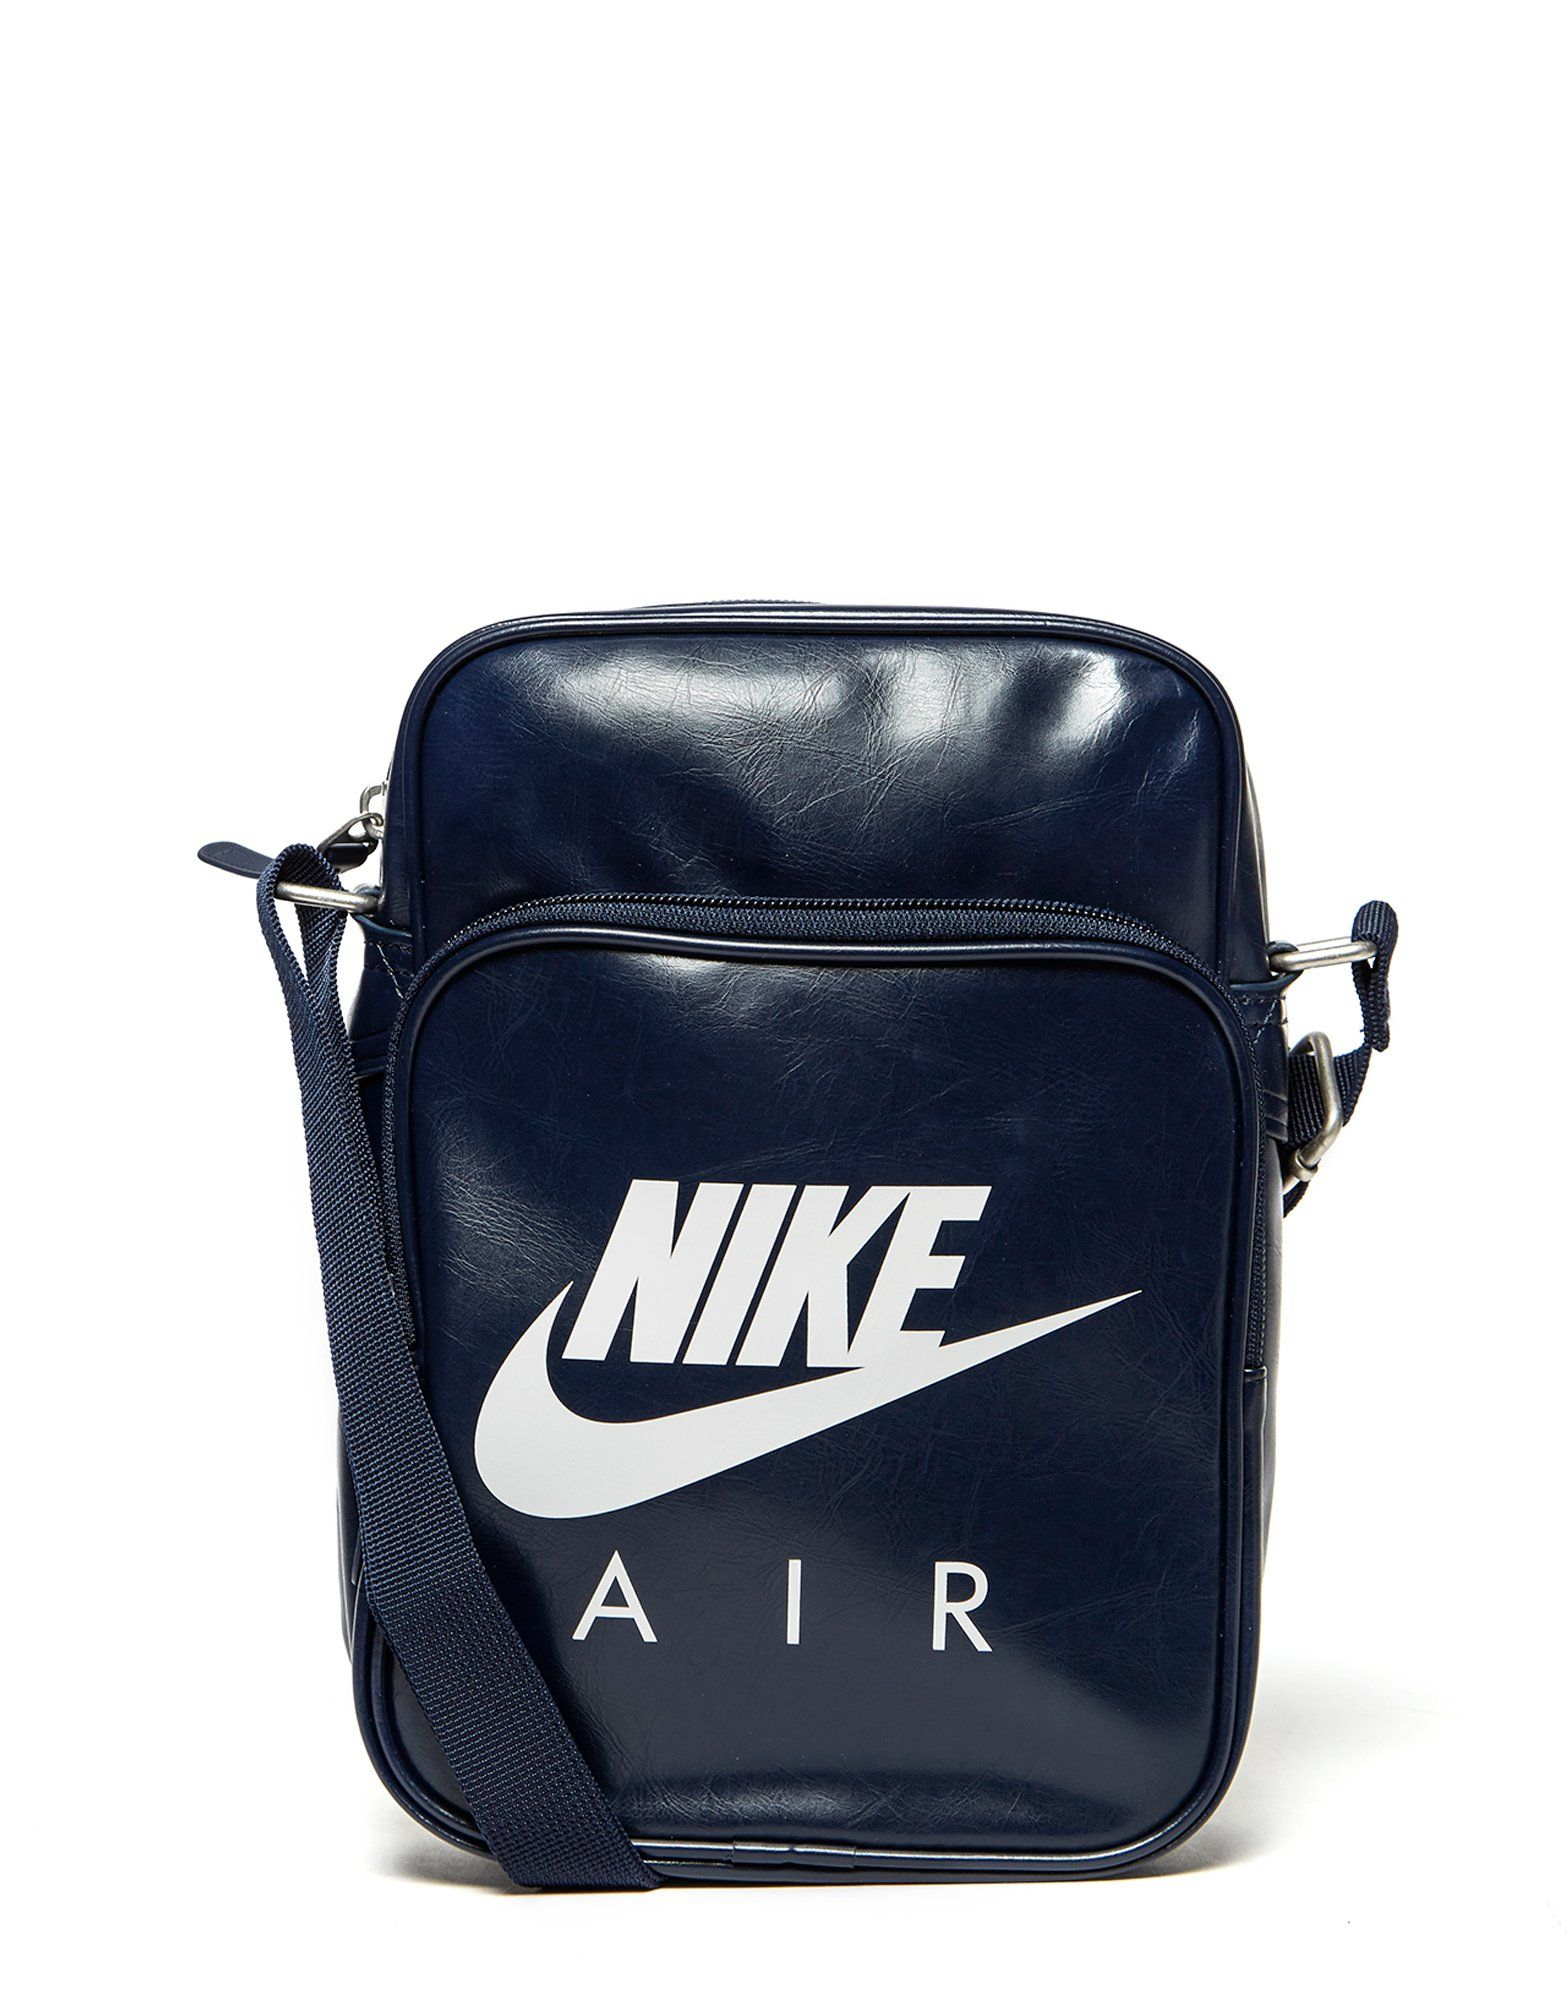 ccc539118e well-wreapped Nike Air Small Items Bag